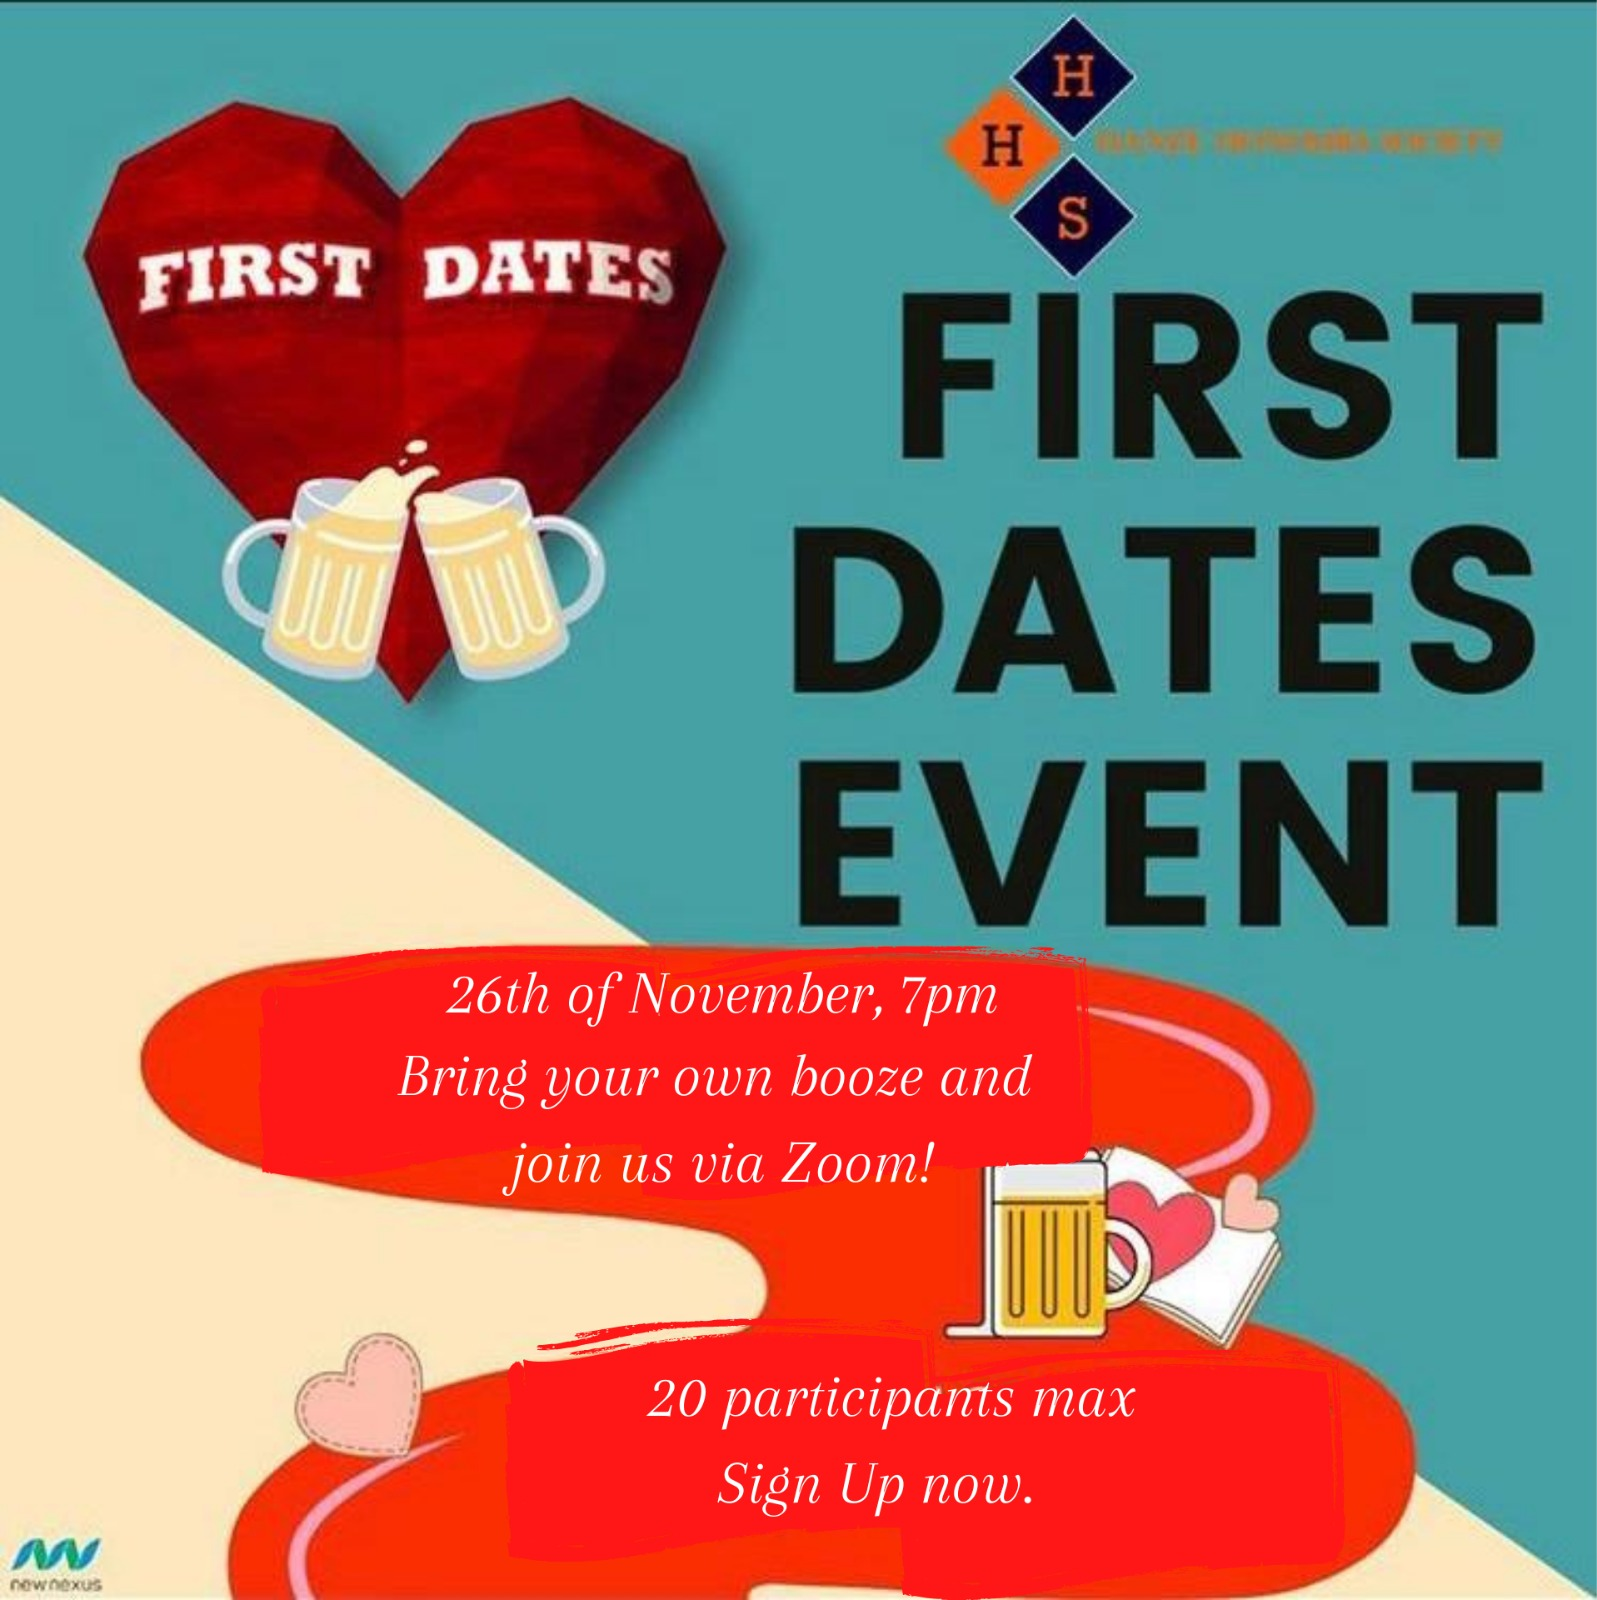 First Dates event